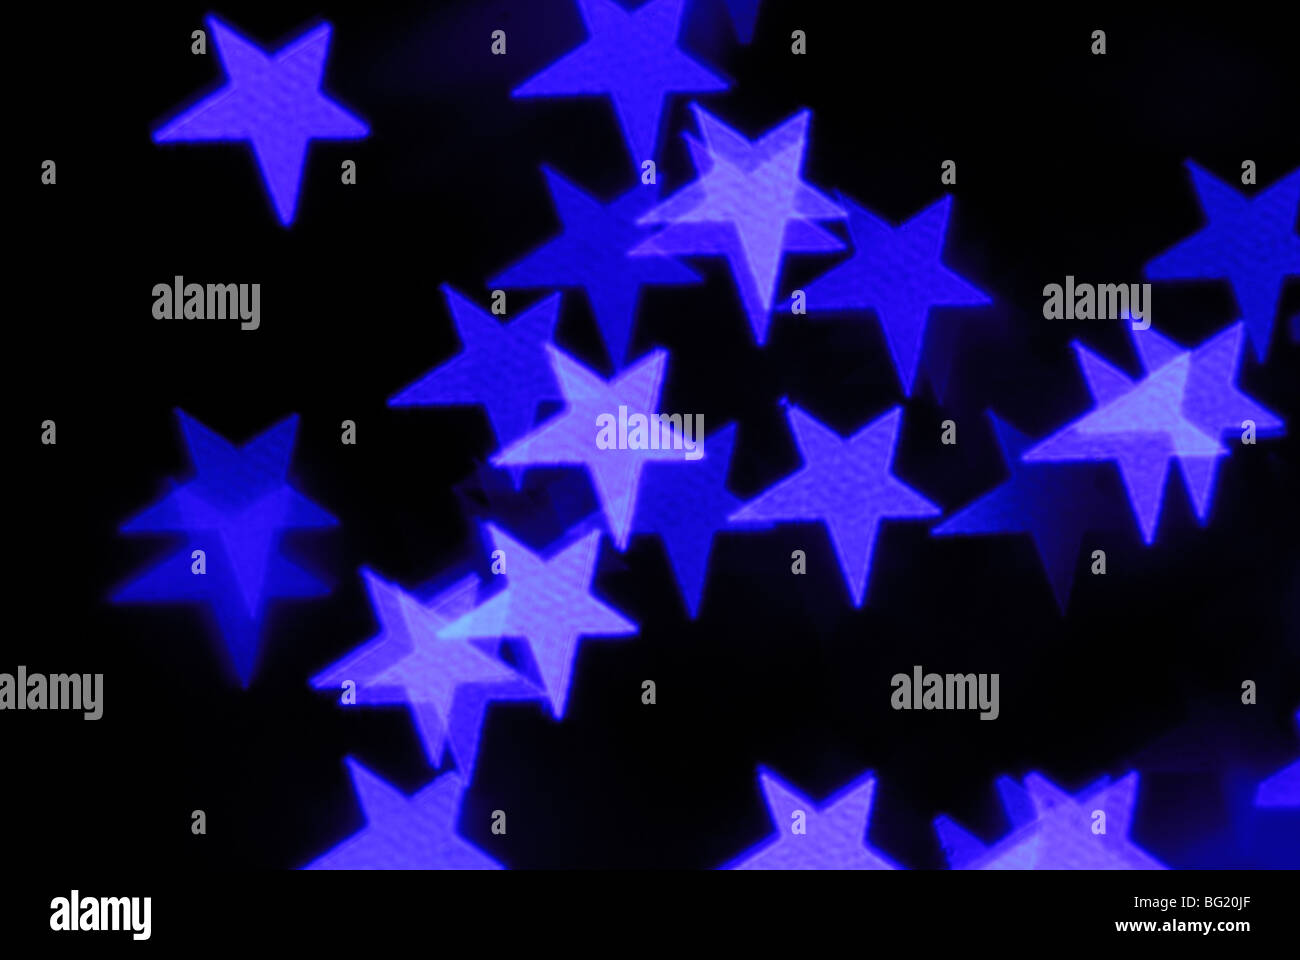 Abstract stars on black background - Stock Image